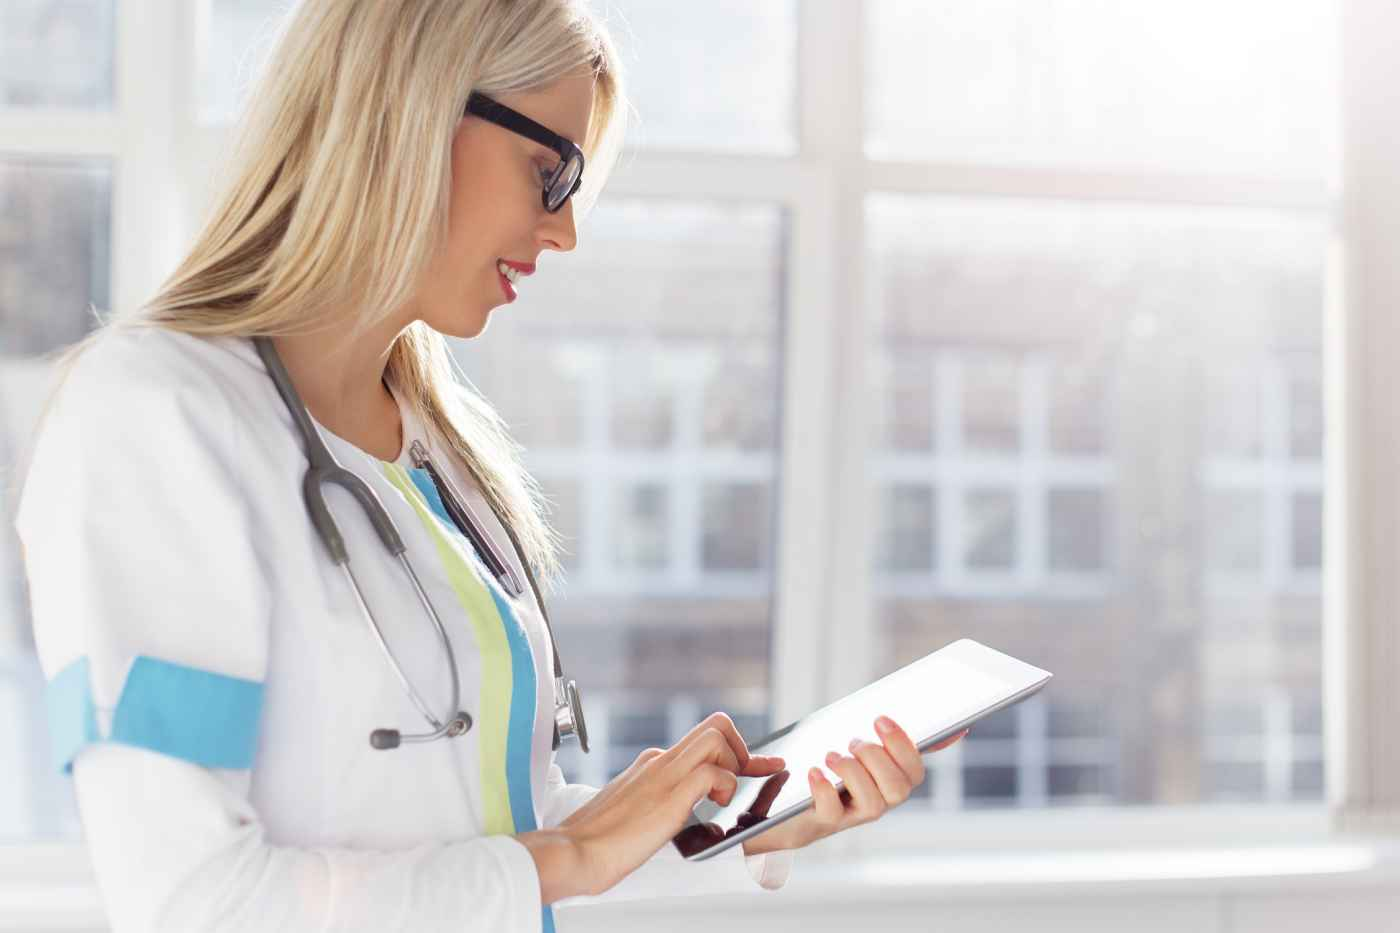 It's clear that the combination of mobile healthcare apps and artifical intelligence is the future of health care.